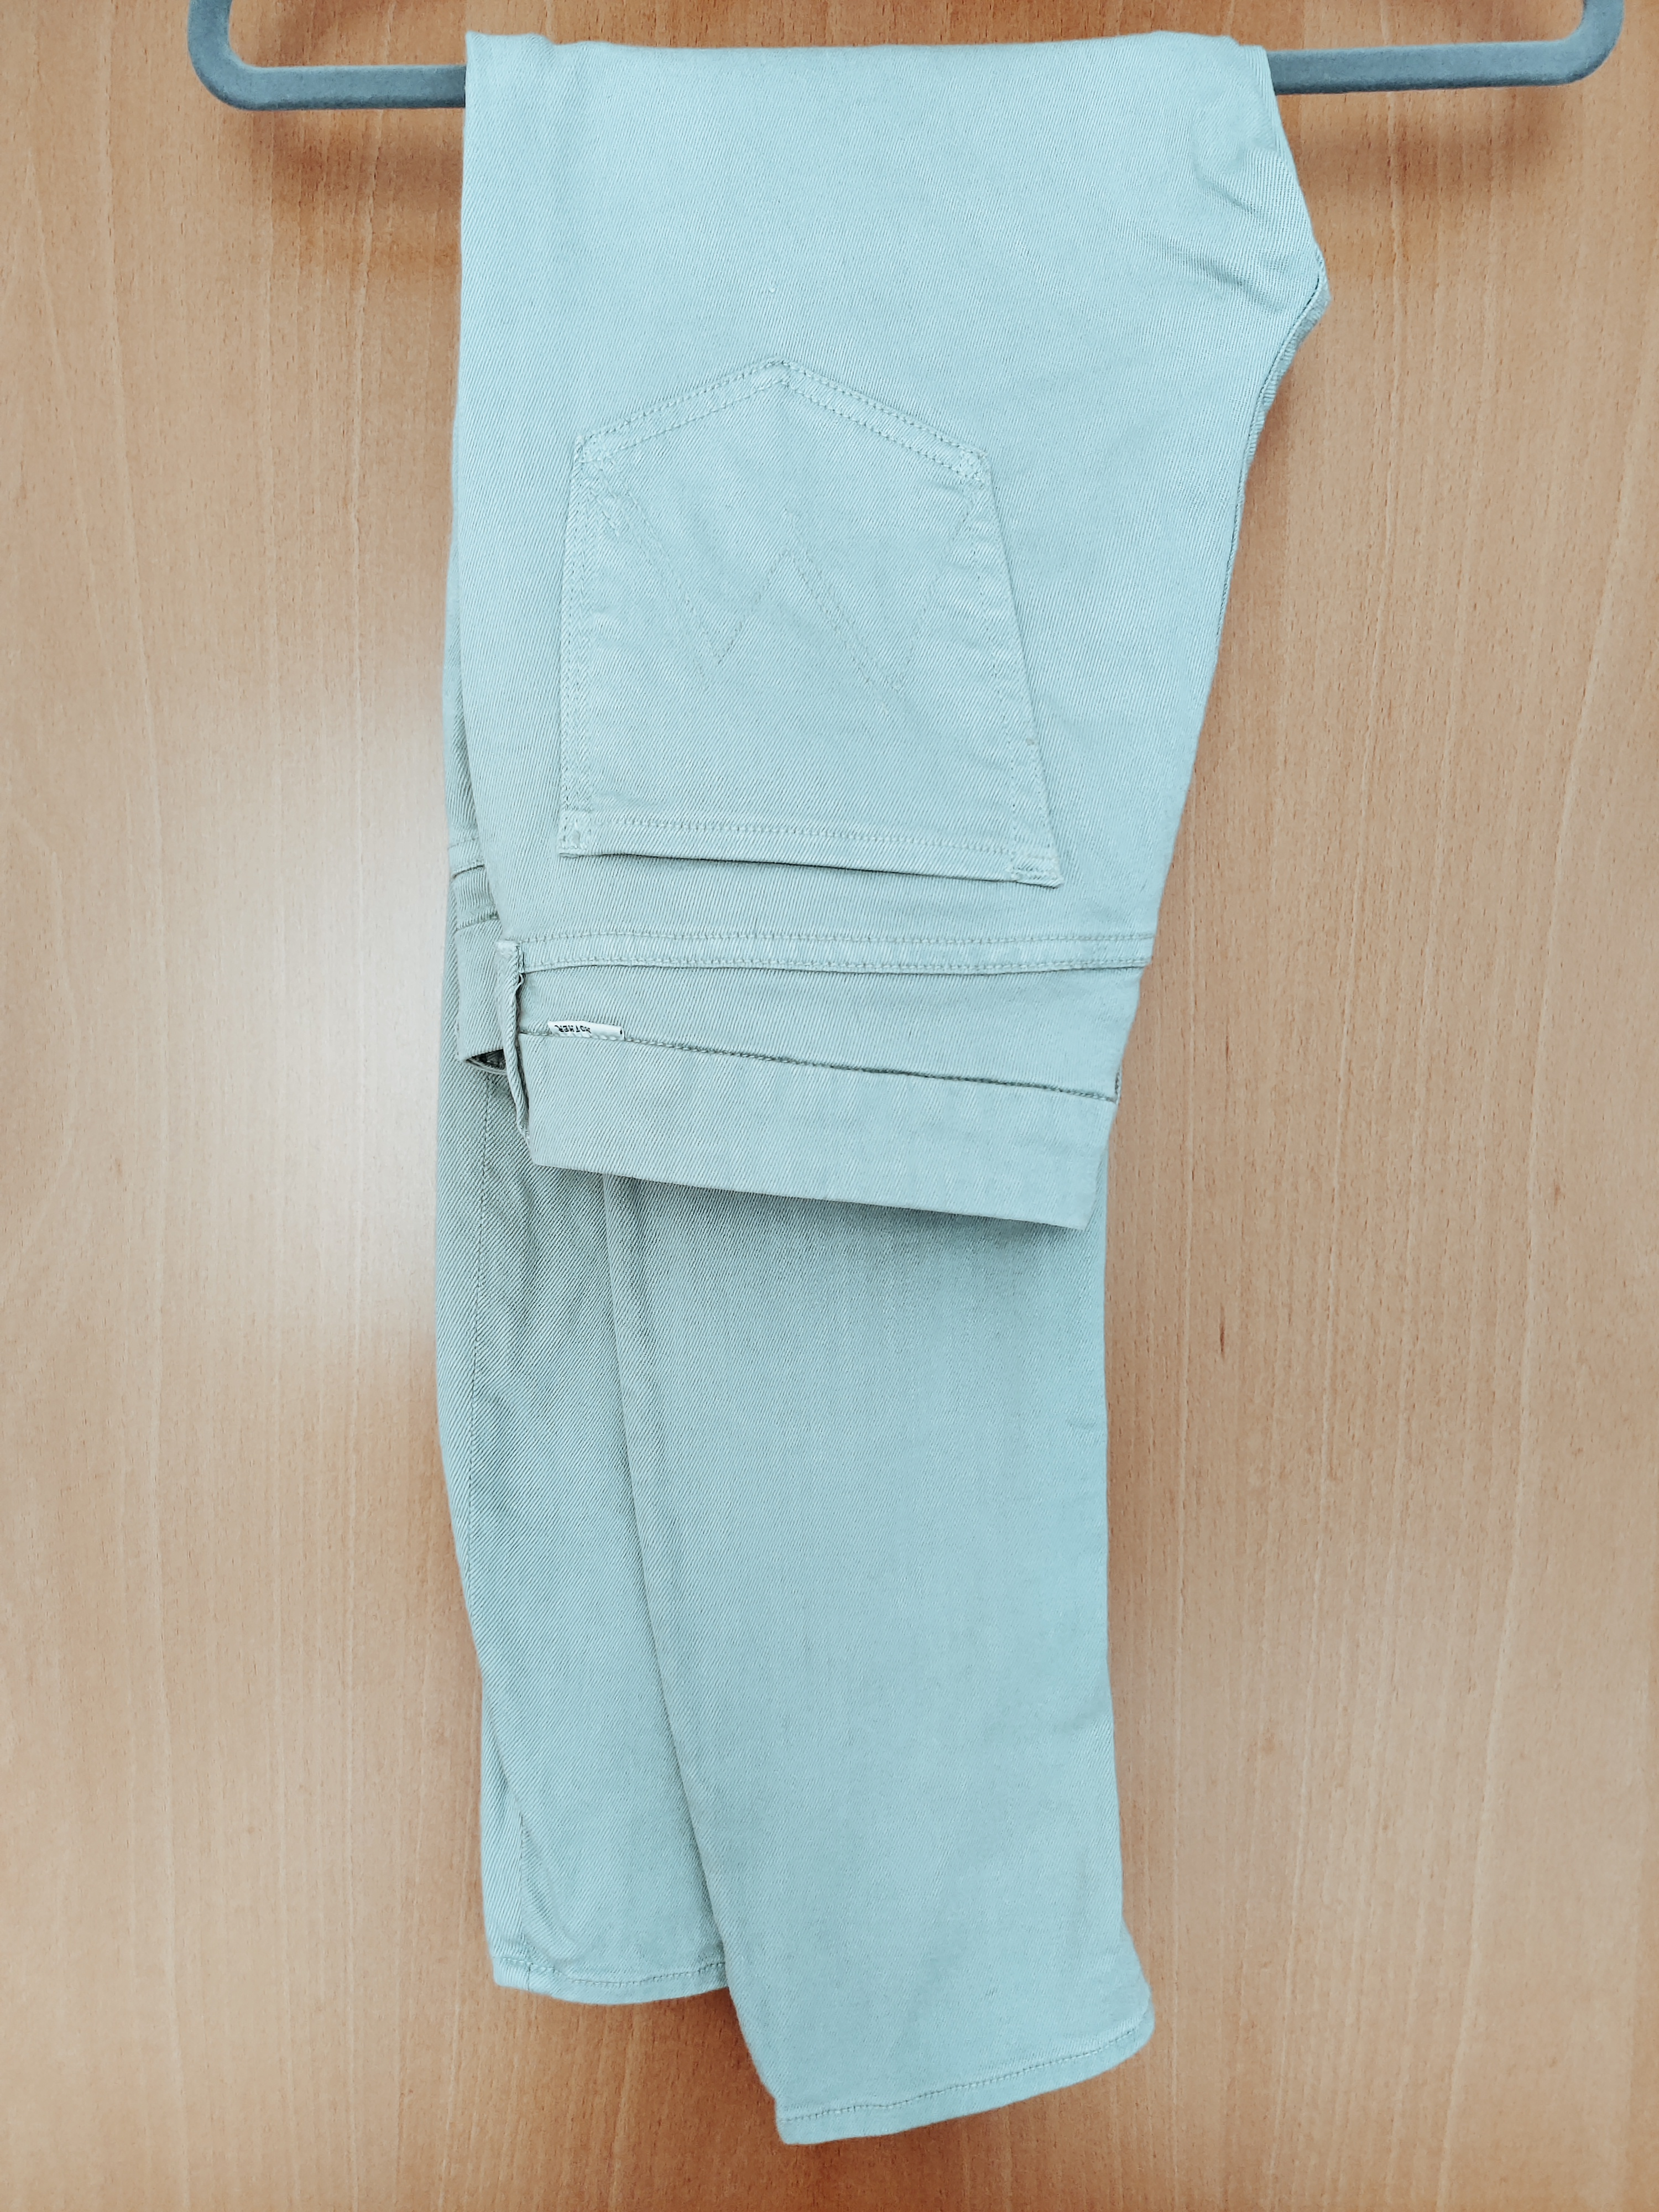 Image of Mother Powder blue jeans